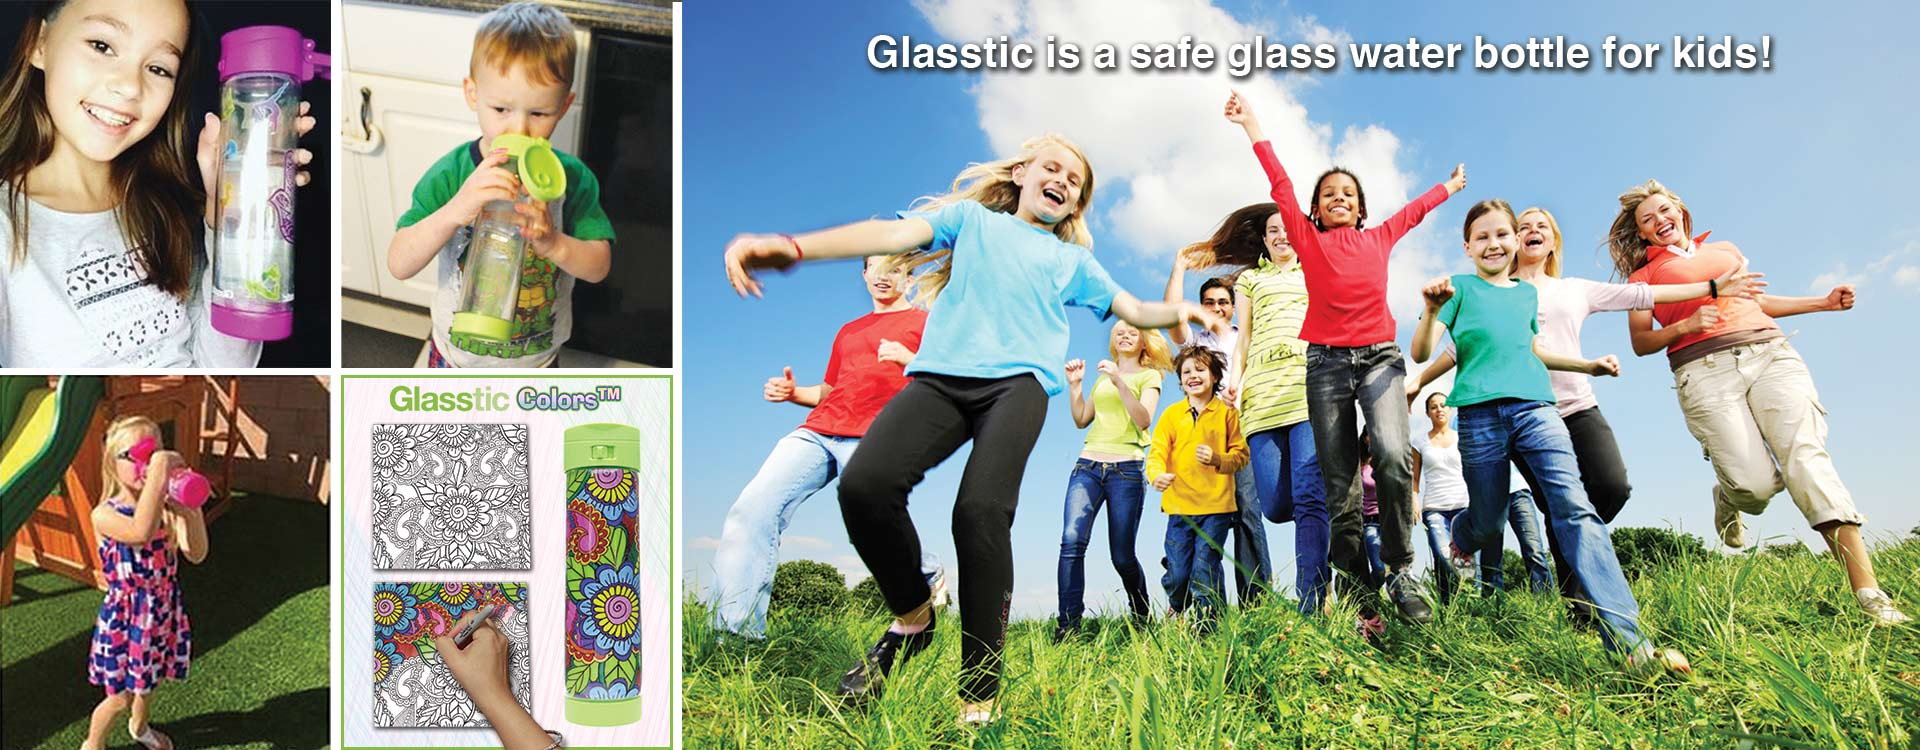 Glasstic - Safe for Kids